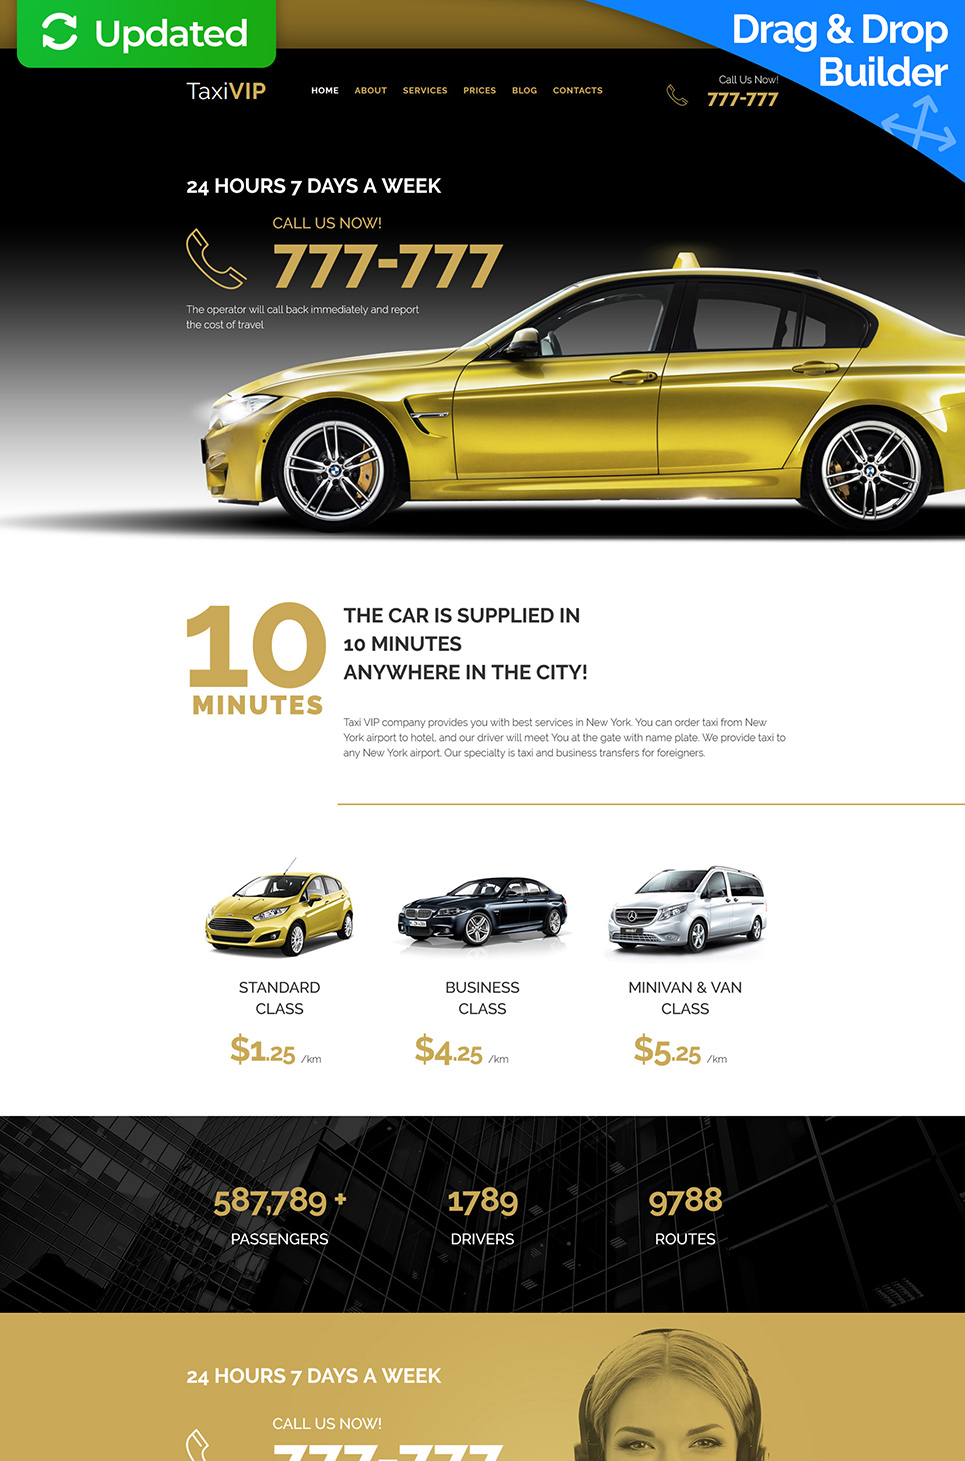 Taxi Vip Responsive Website Template - image